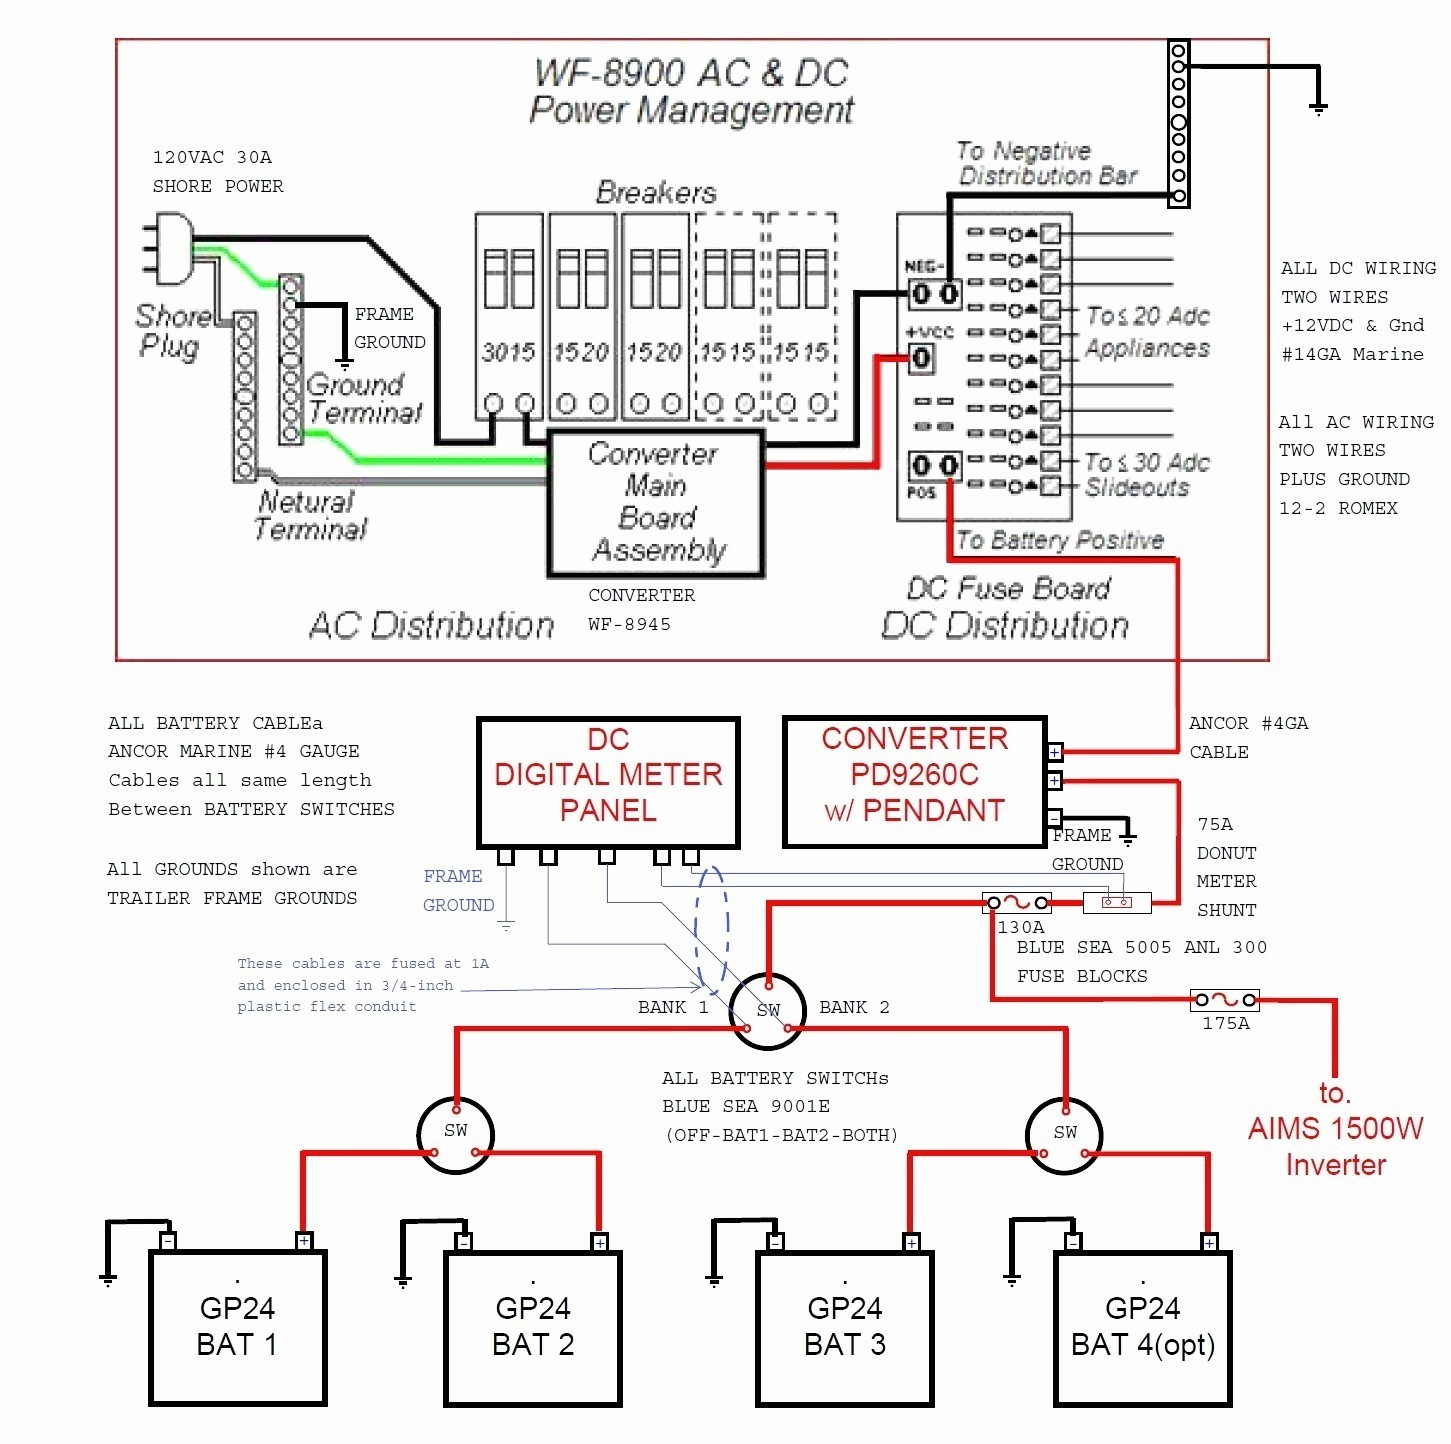 Comet Travel Trailer Wiring Diagram | Manual E-Books - Travel Trailer Wiring Diagram